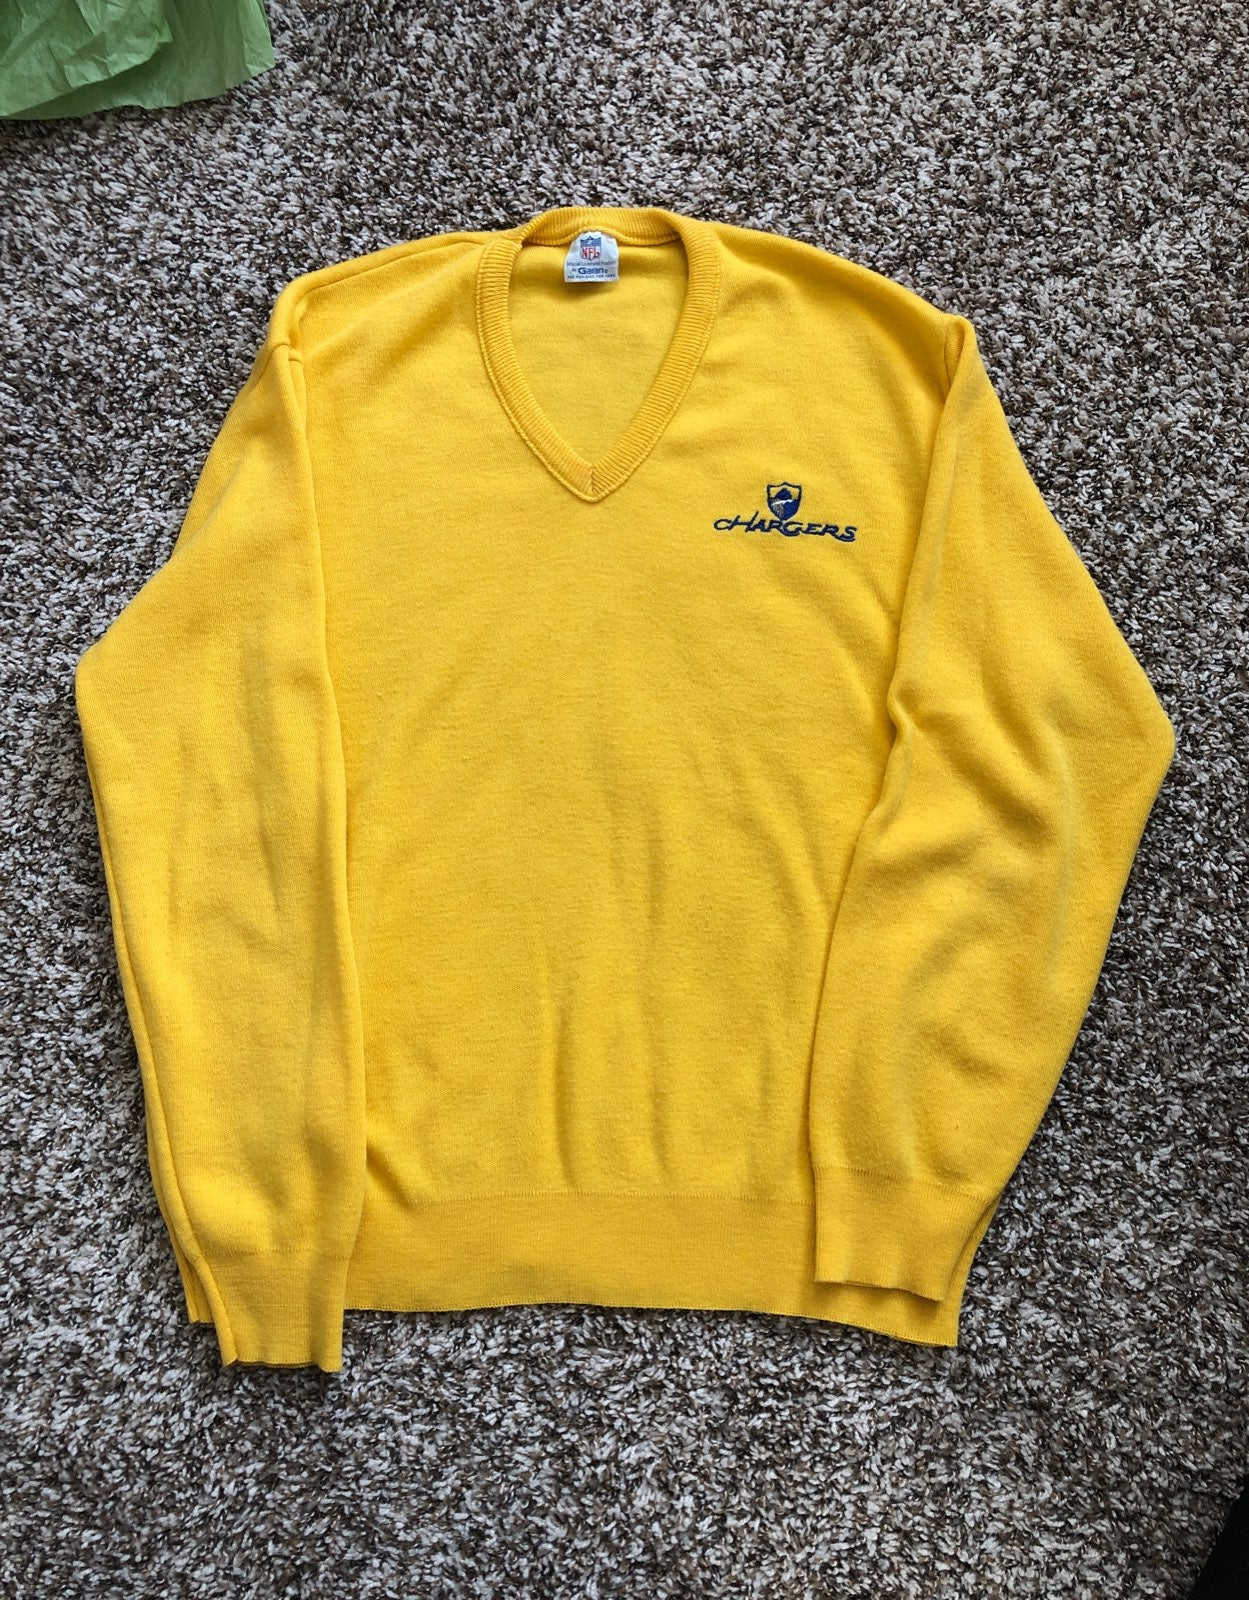 Chargers Men's v-neck sweater